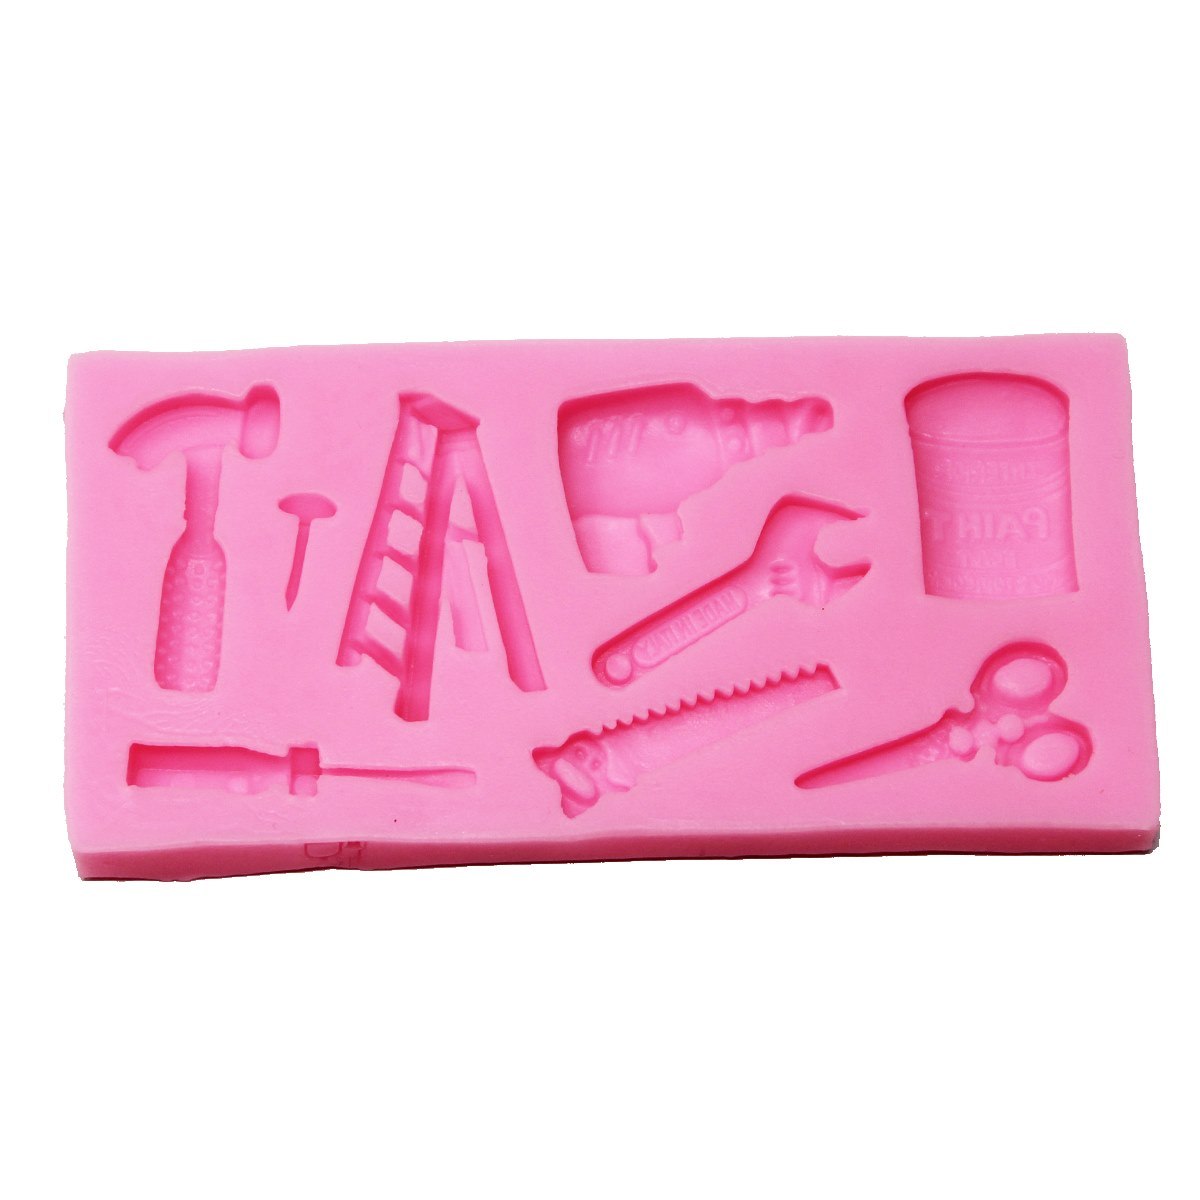 Resin Silicone Mould Hardware Tools Design